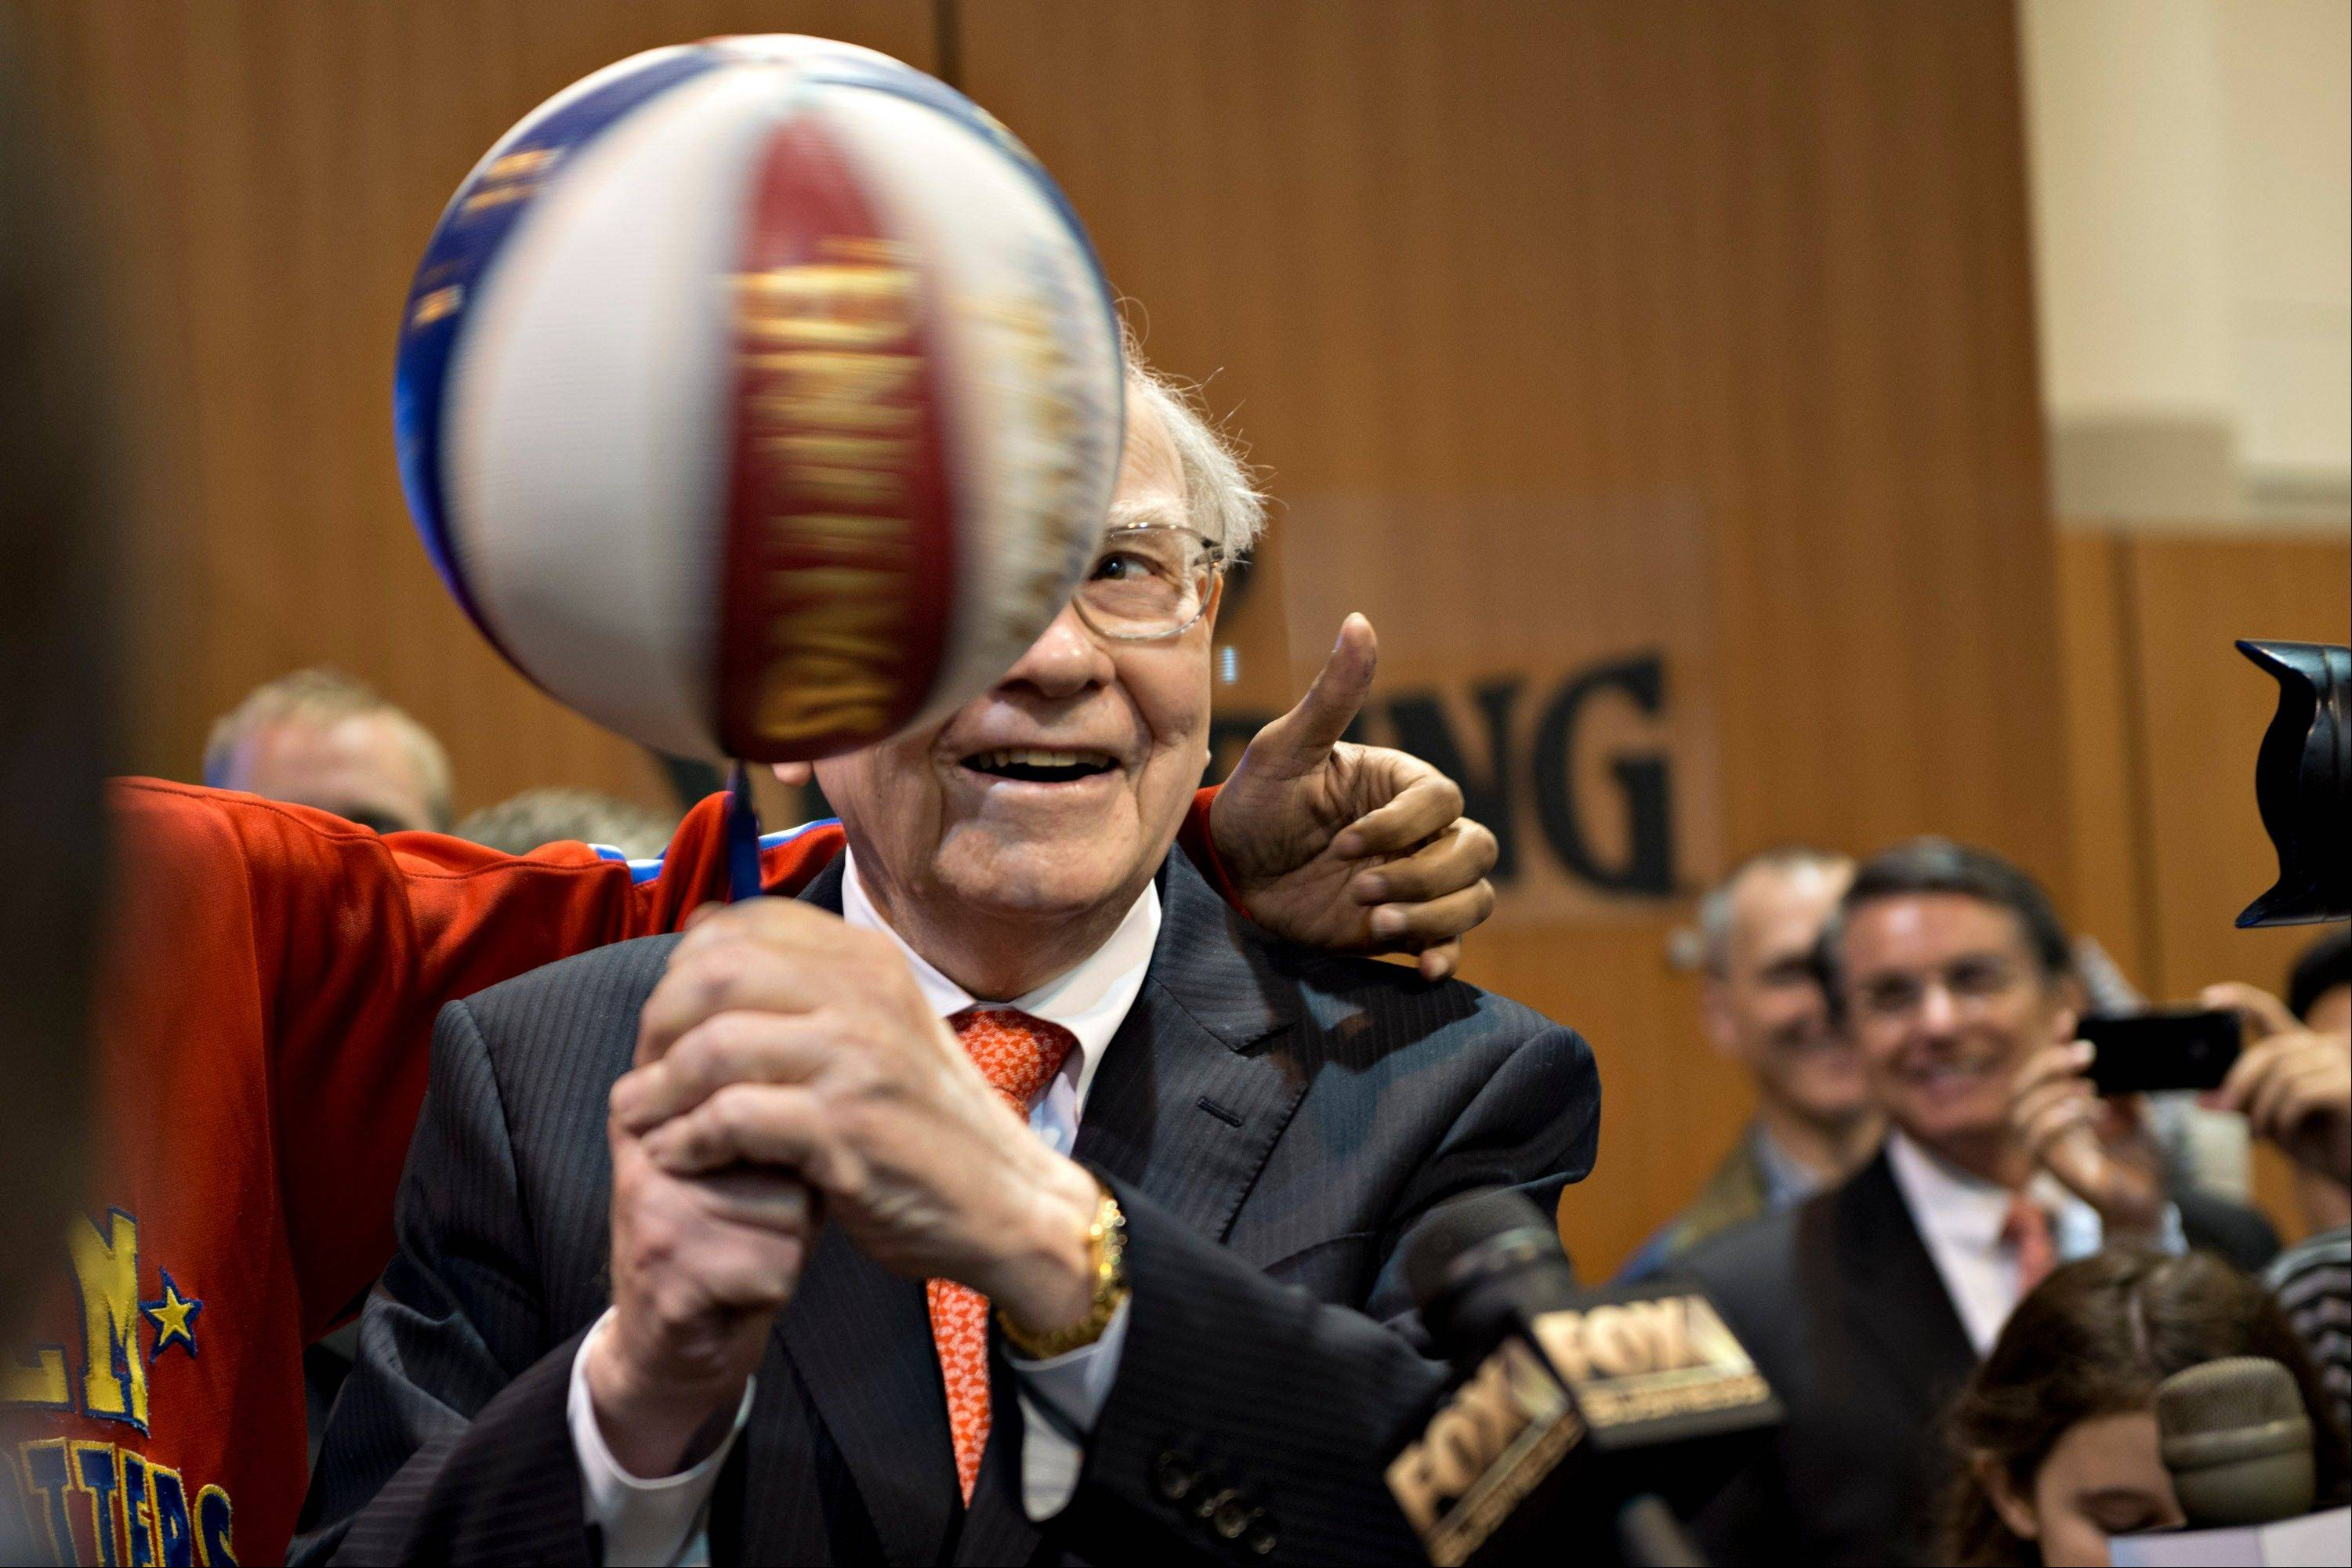 Warren Buffett, chairman and chief executive officer of Berkshire Hathaway Inc., spins a basketball on a pen Saturday as he stands with a member of the Harlem Globetrotters during a tour of the exhibition floor prior to the start of the Berkshire shareholders meeting in Omaha, Nebraska.